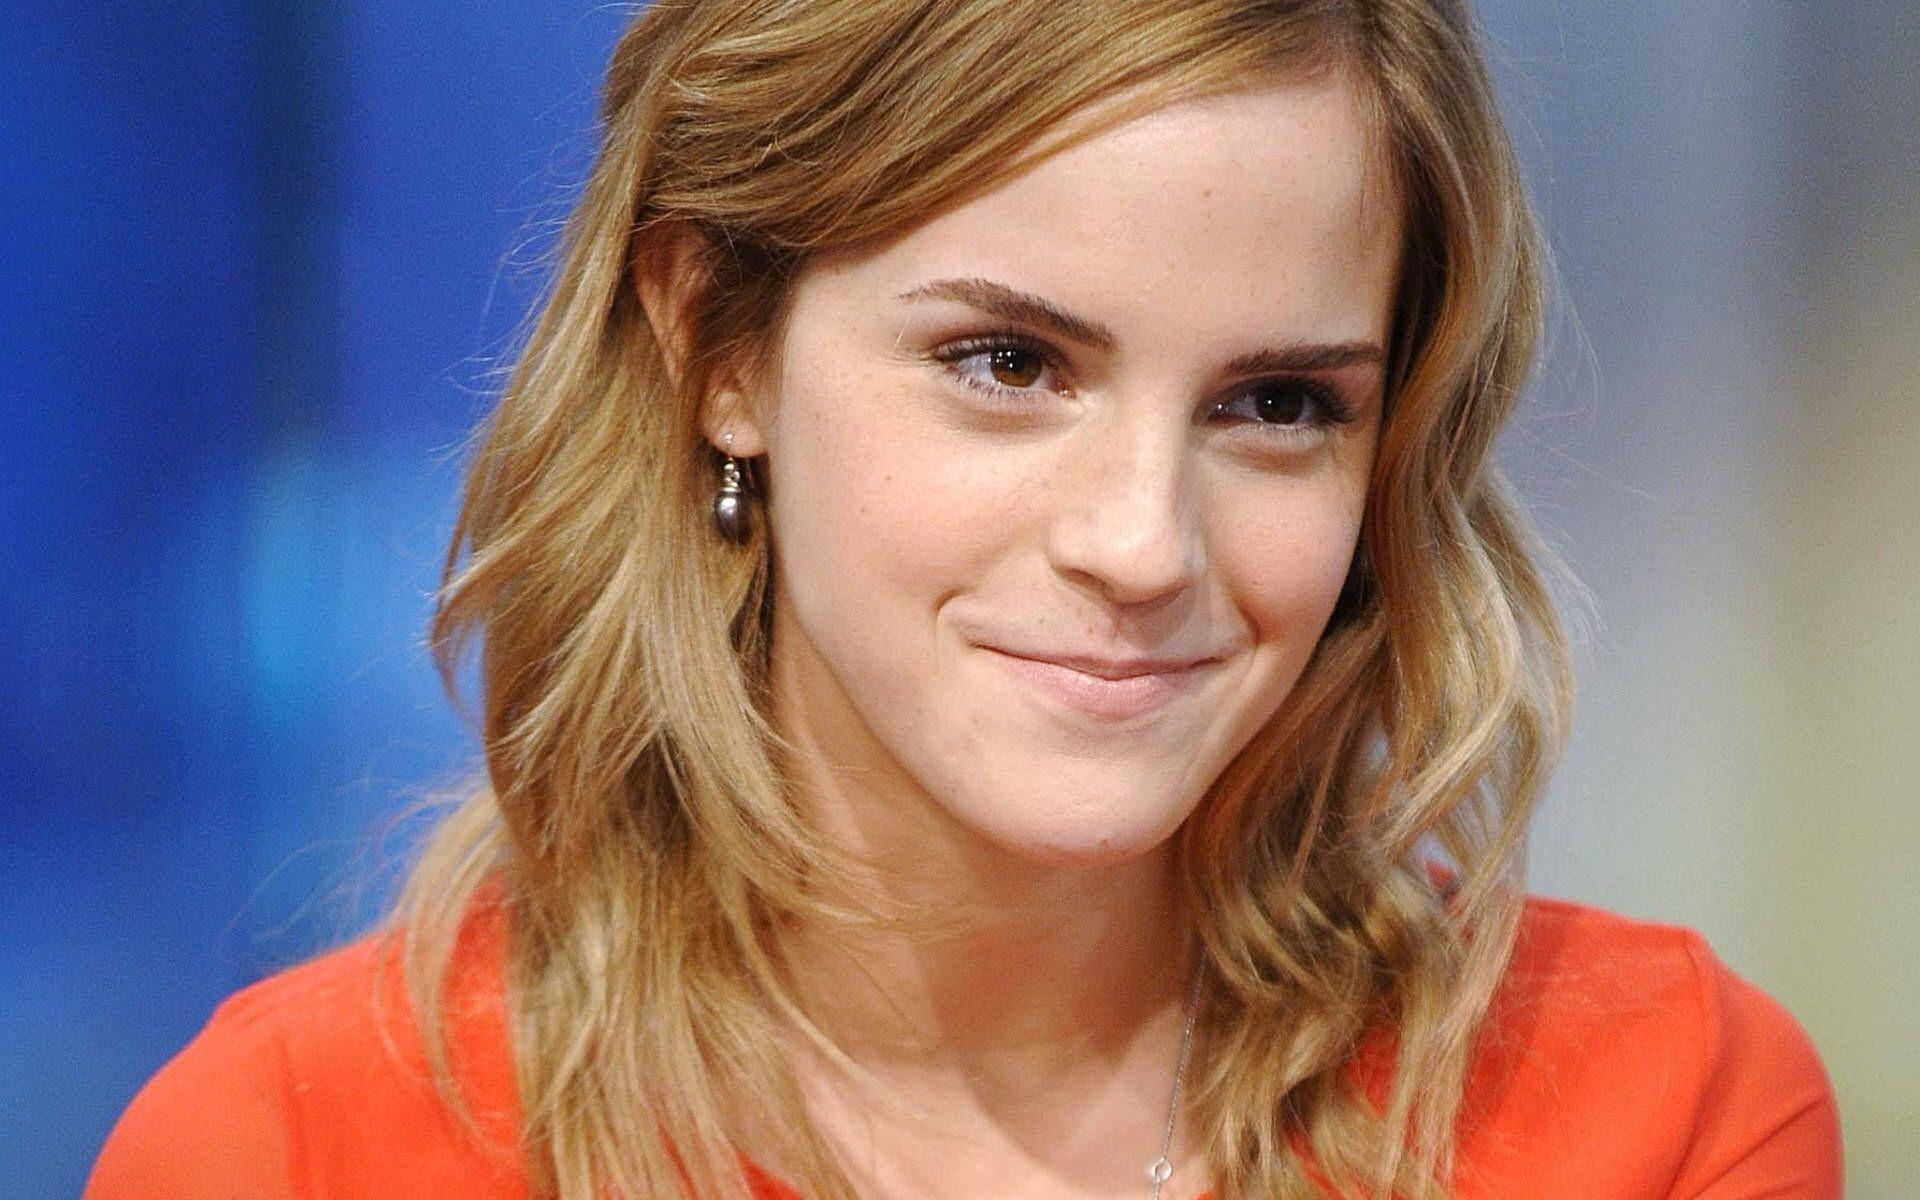 emma watson hd wallpapers - wallpaper cave